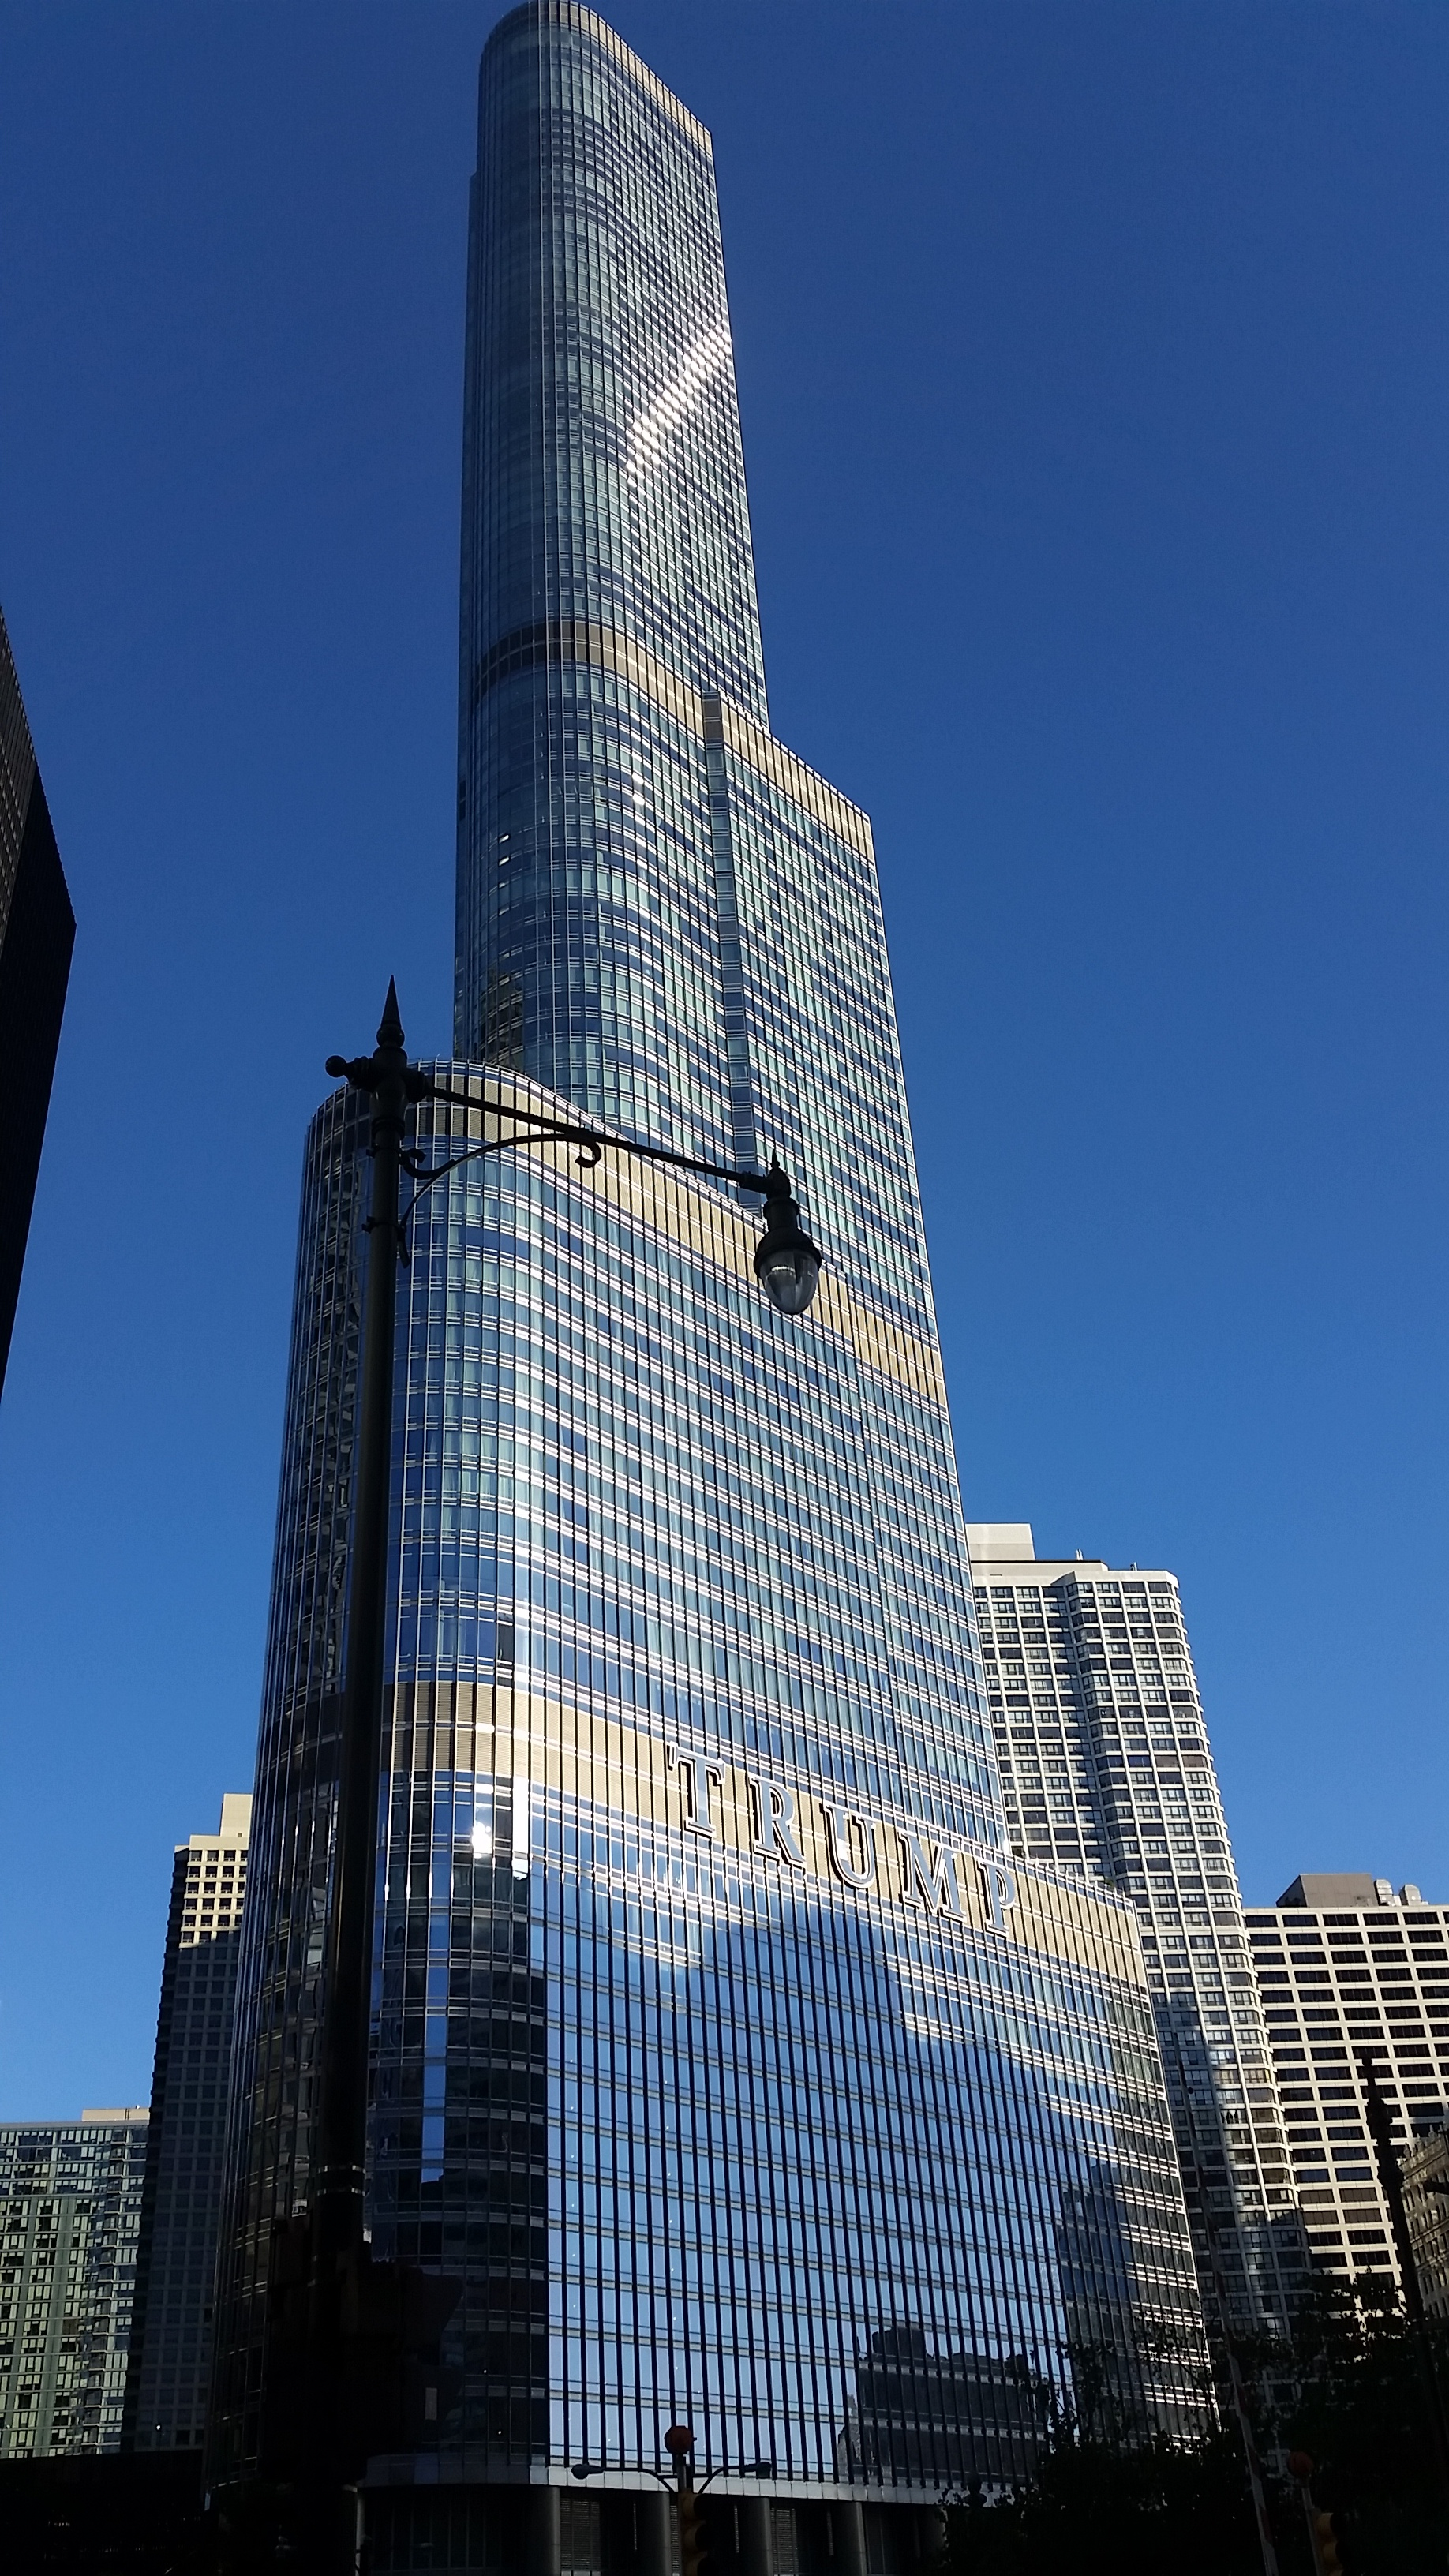 Trump tower in Chicago. The greatest, most fantastic and least racist tower you've ever met.